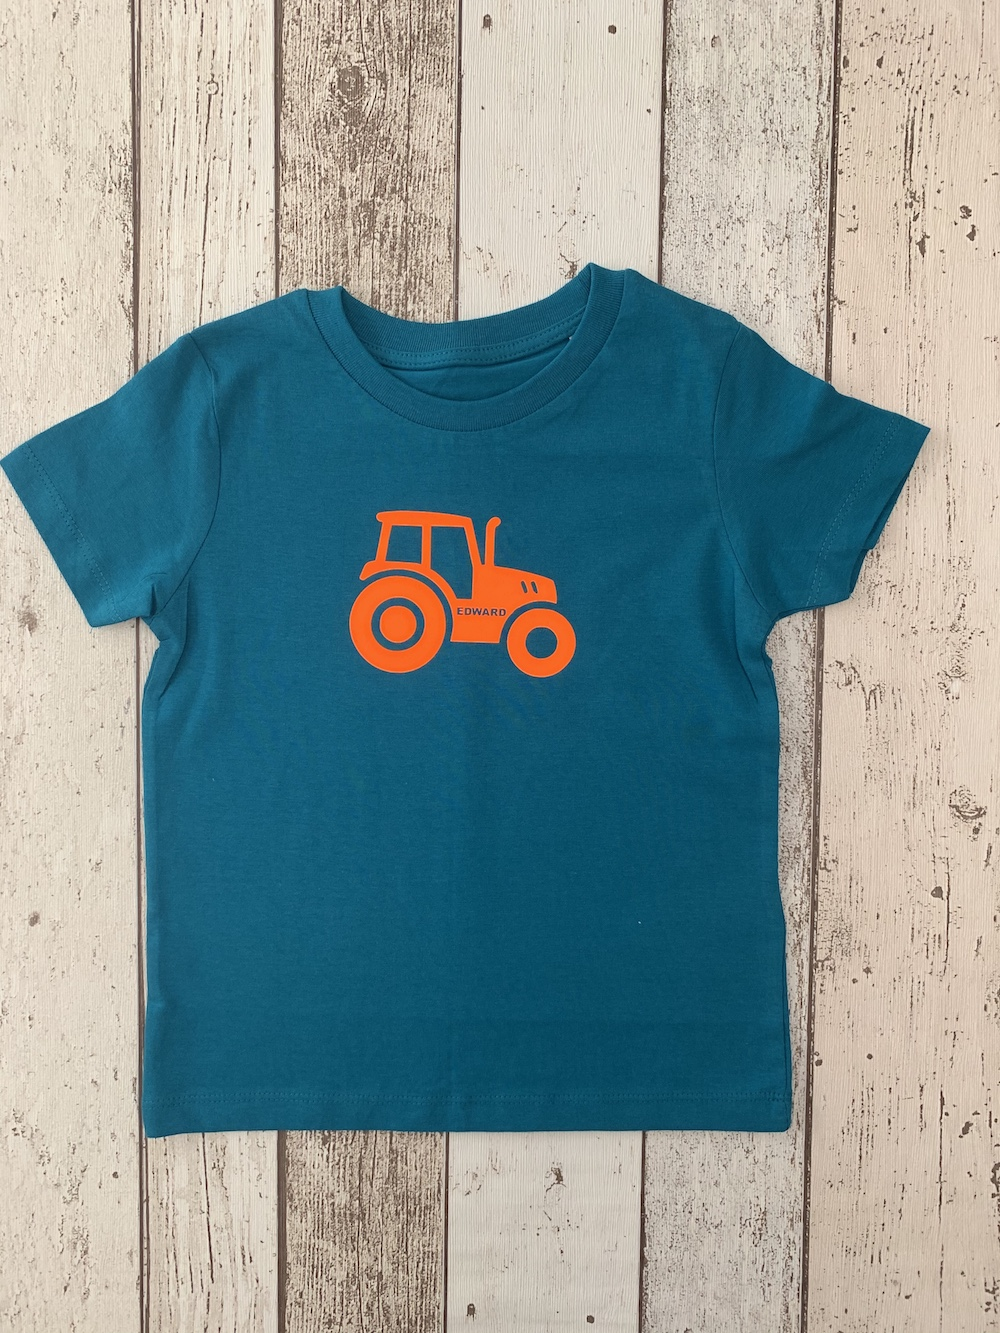 Tractor Personalised Tshirt – Ocean And Orange